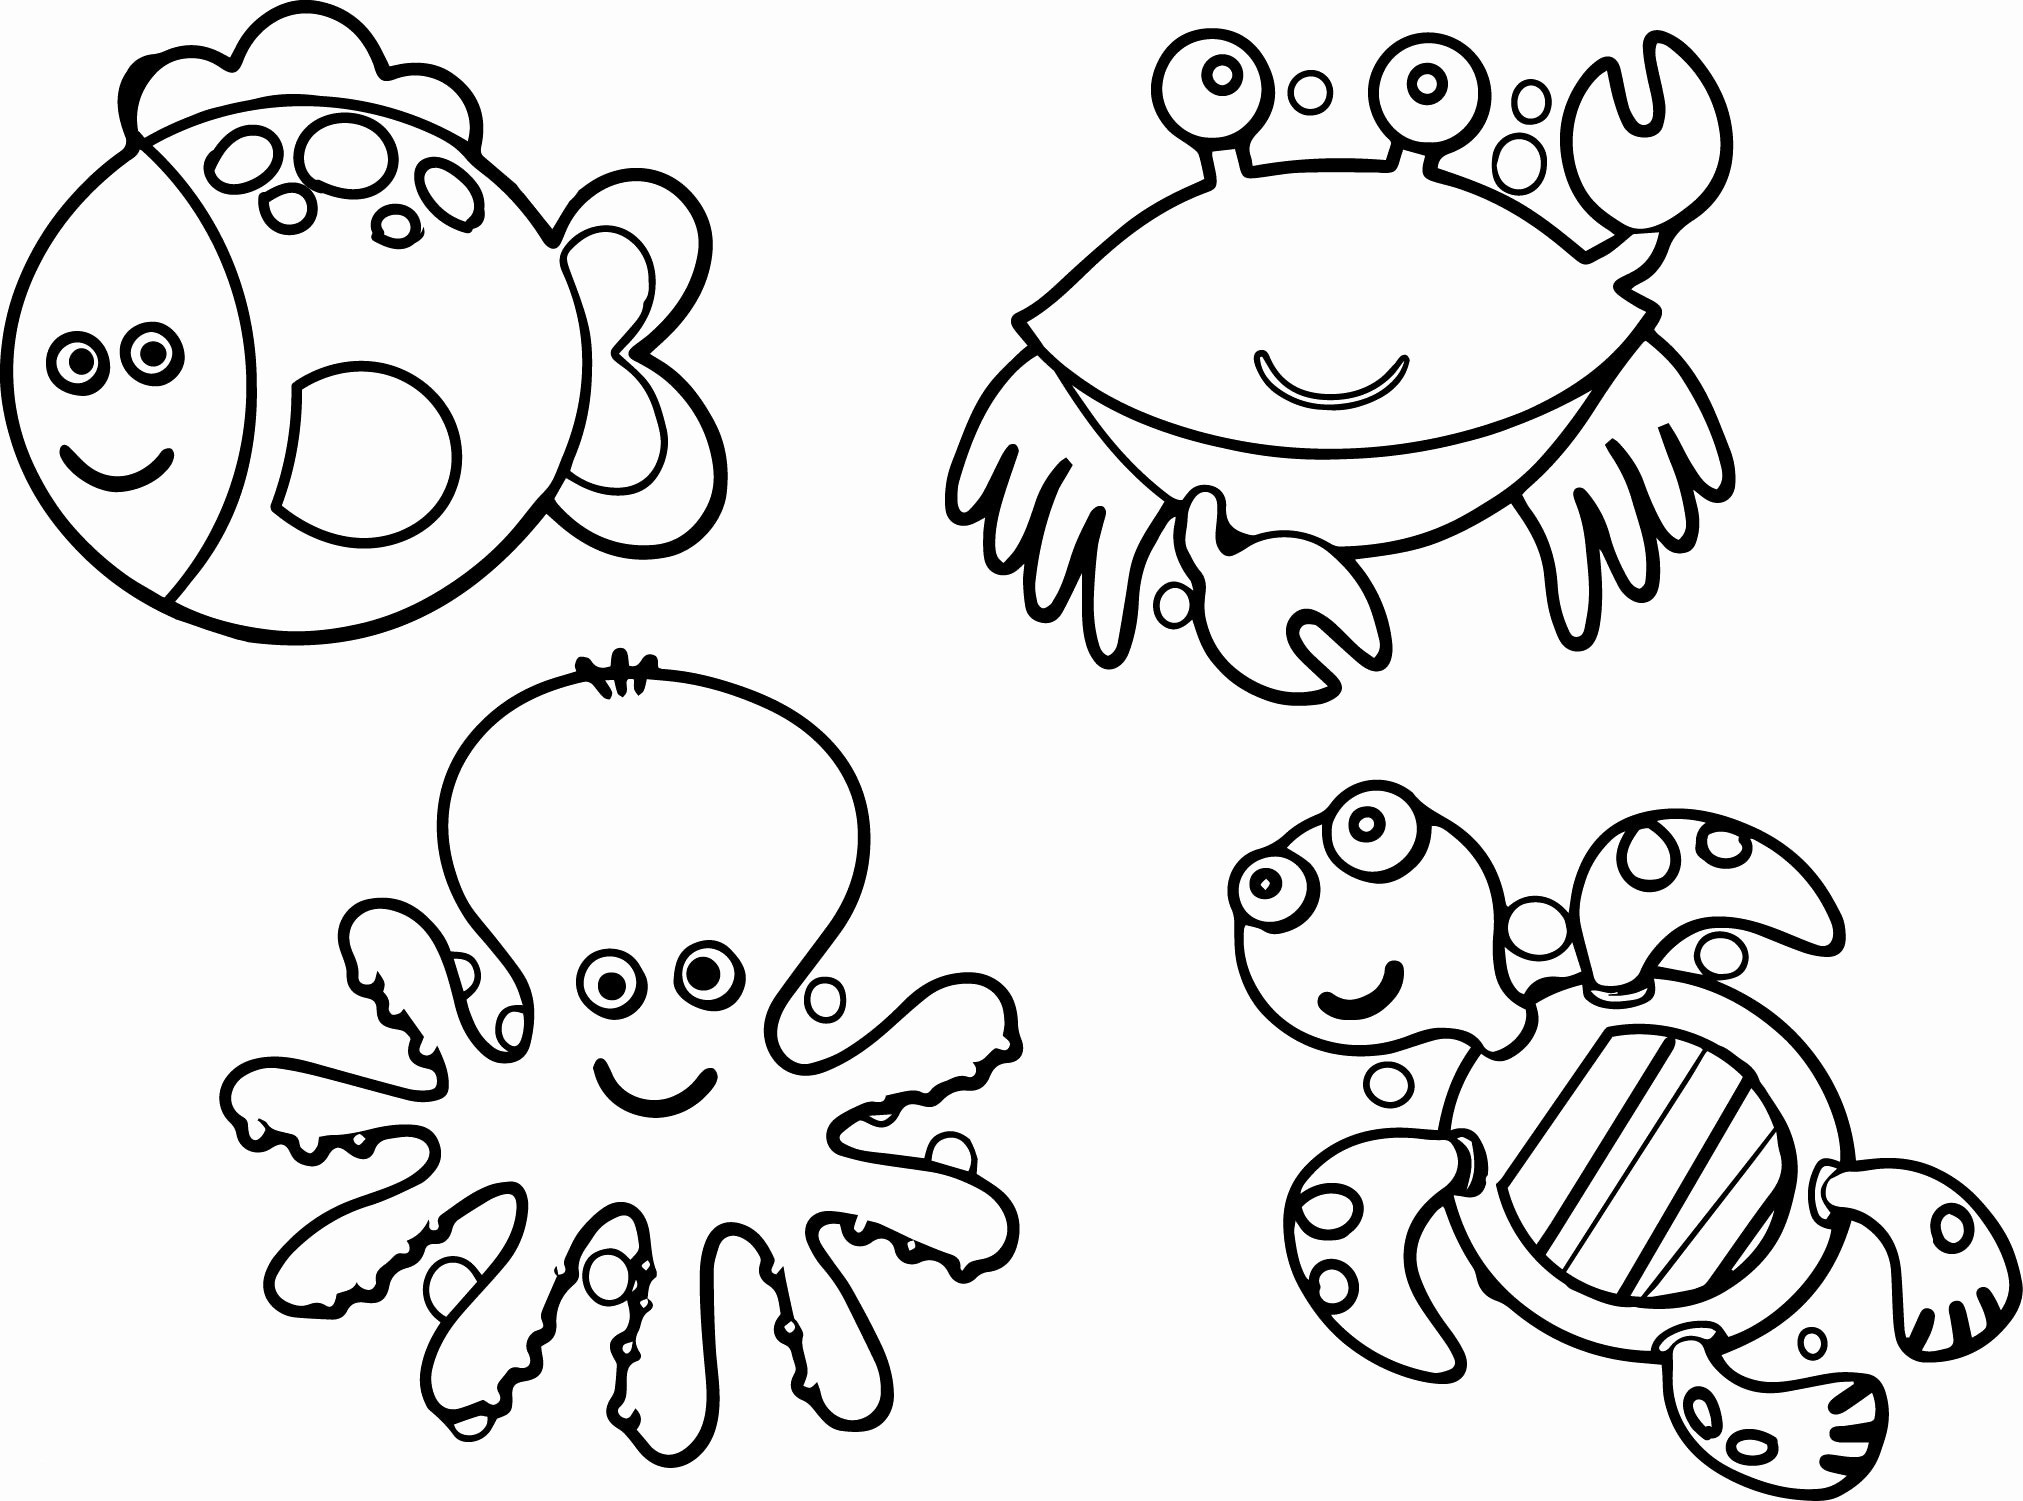 animal coloring pages for kids free printable coloring pages animals 2015 coloring pages for kids animal